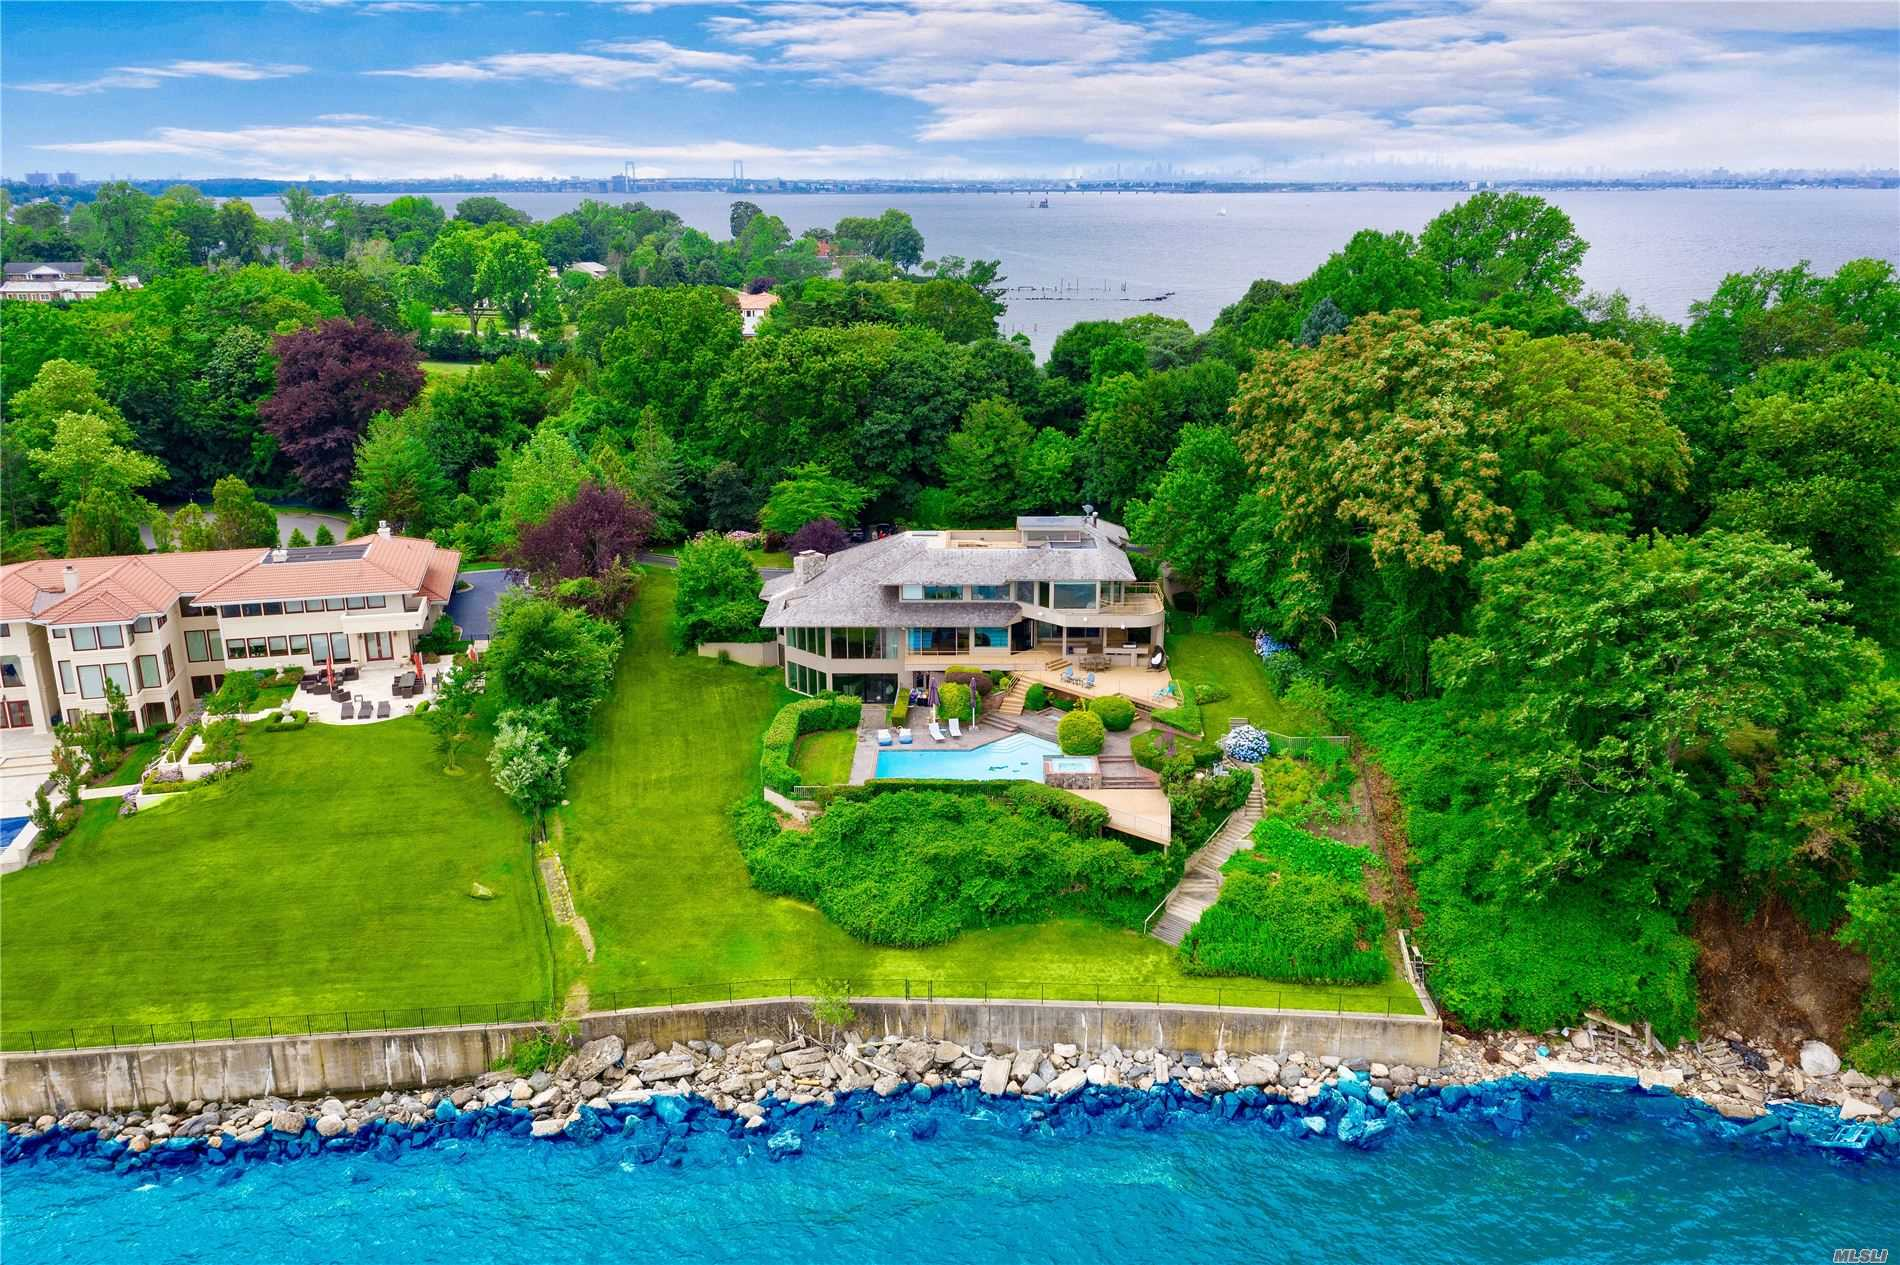 Spectacular custom built contemporary home, situated on well over an acre of waterfront property, located on one of the North Shore of Long Island's most prestigious streets, Gatsby Lane. Walls of glass provide for unobstructed of the Long Island Sound throughout every room of the home. Perfect for entertaining, the house boasts an in-ground pool overlooking the water, multiple decks and terraces, a full-sized wet bar, a billiards room, lookout point and rooftop lounge.